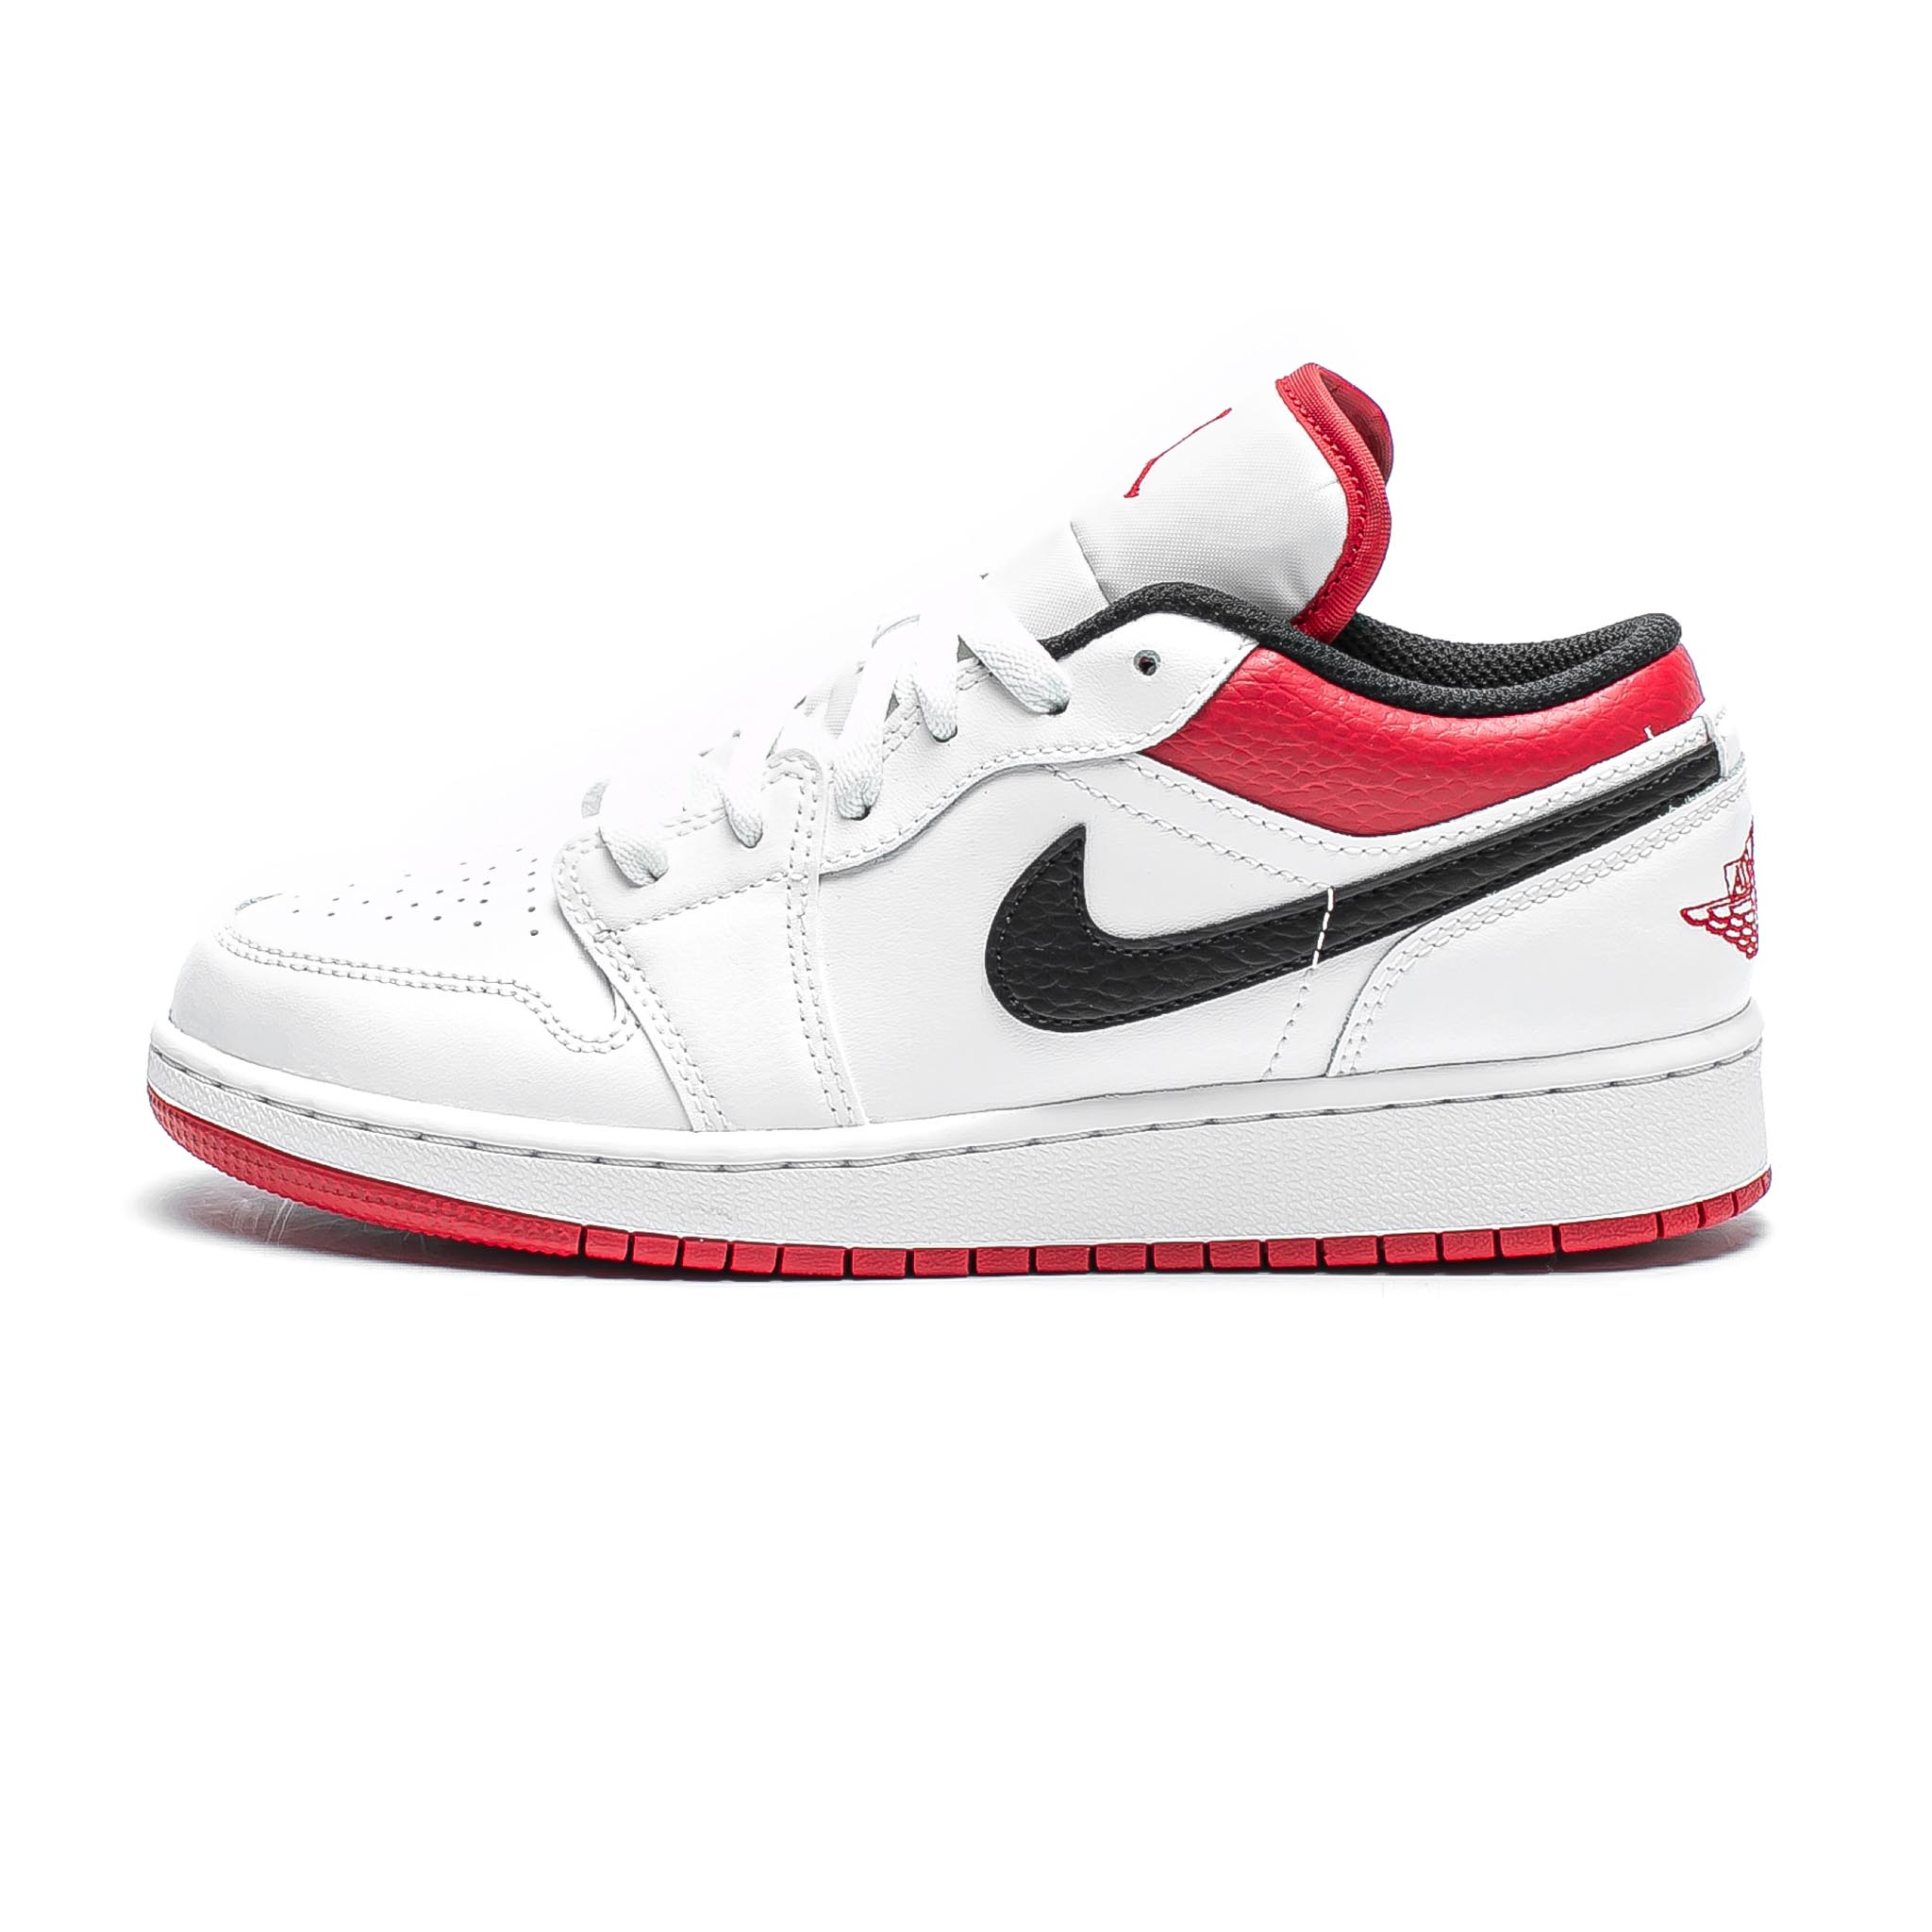 Air Jordan 1 Low 'White/Gym Red'